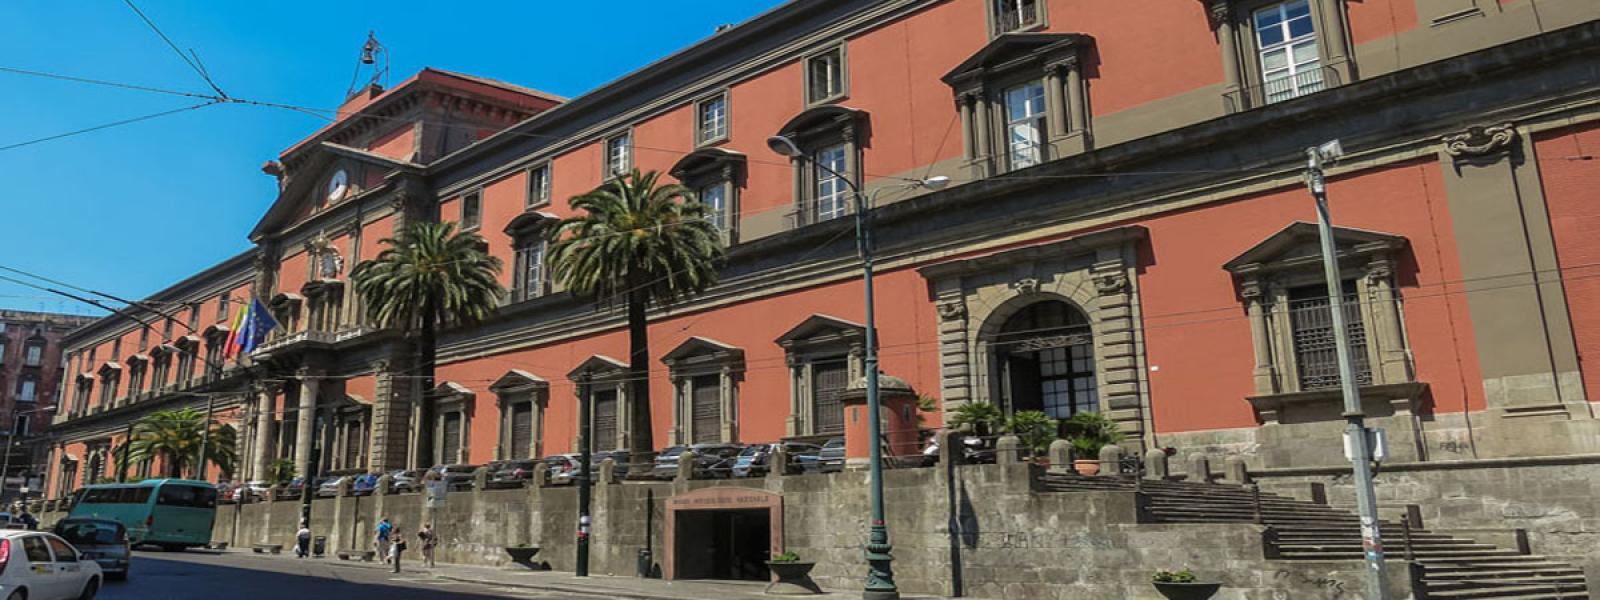 Naples Archaeological Museum